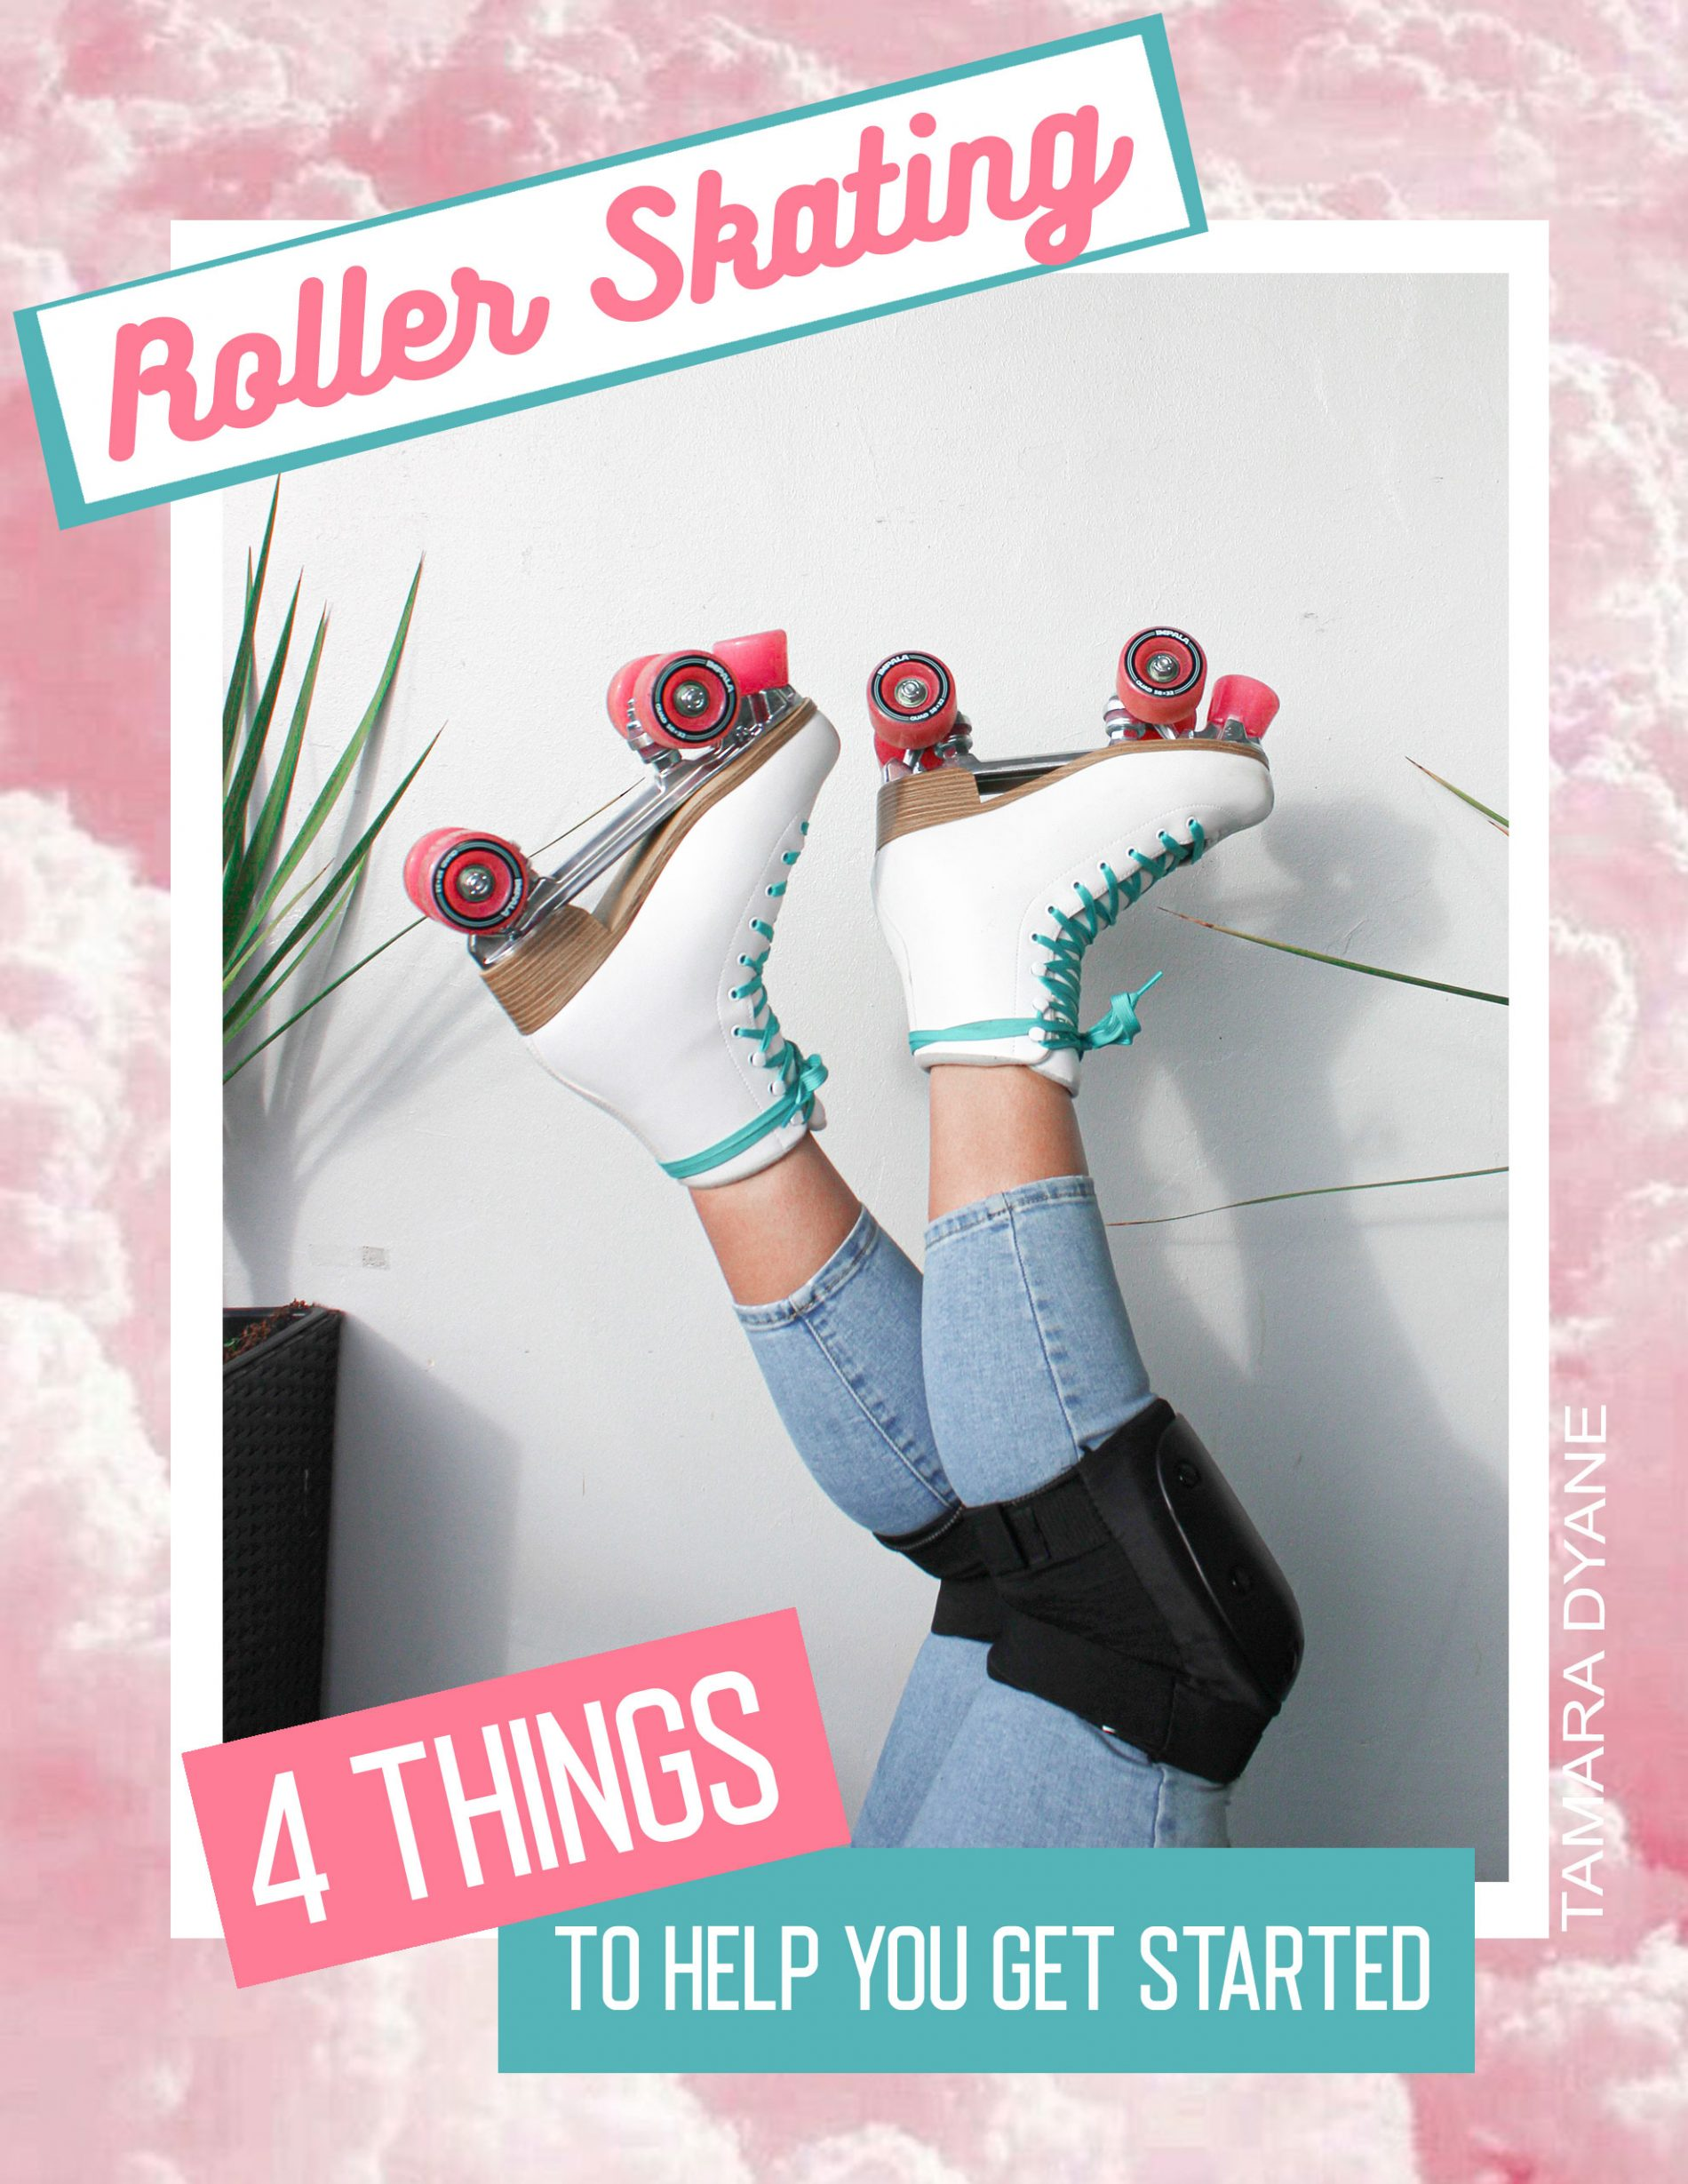 Roller Skating, 4 things to get you started. Impala's from Rollergirl.ca tamaradyane.com